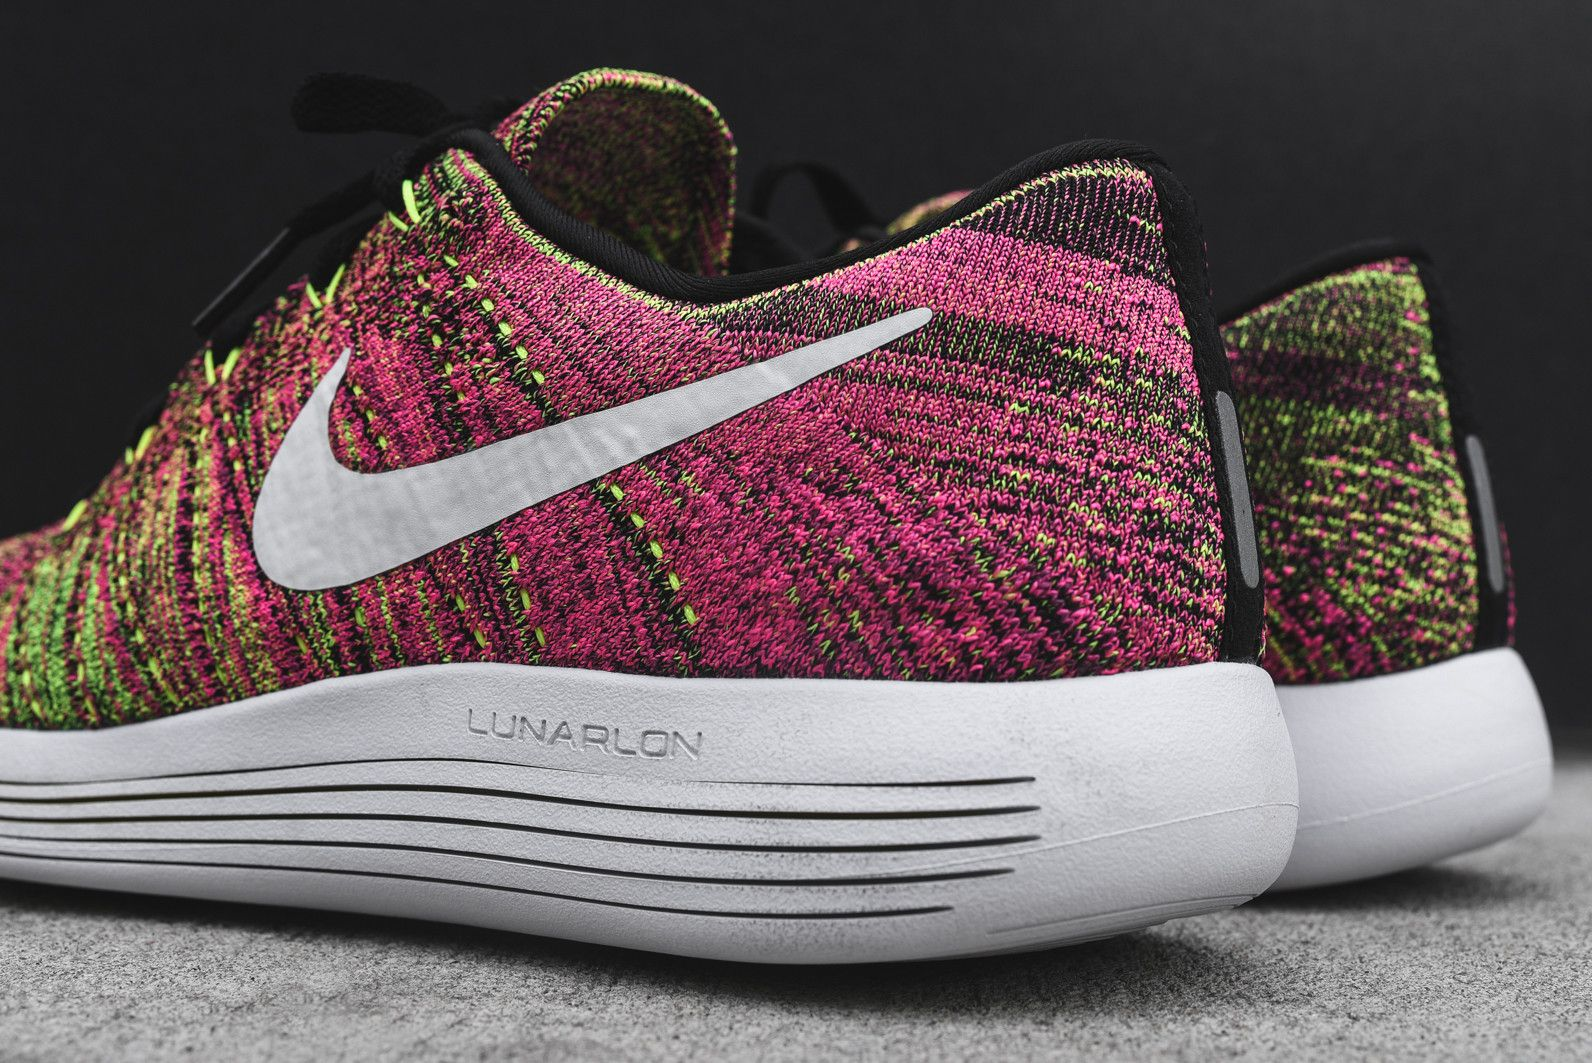 More Images Of The Nike LunarEpic Flyknit Low Multicolor